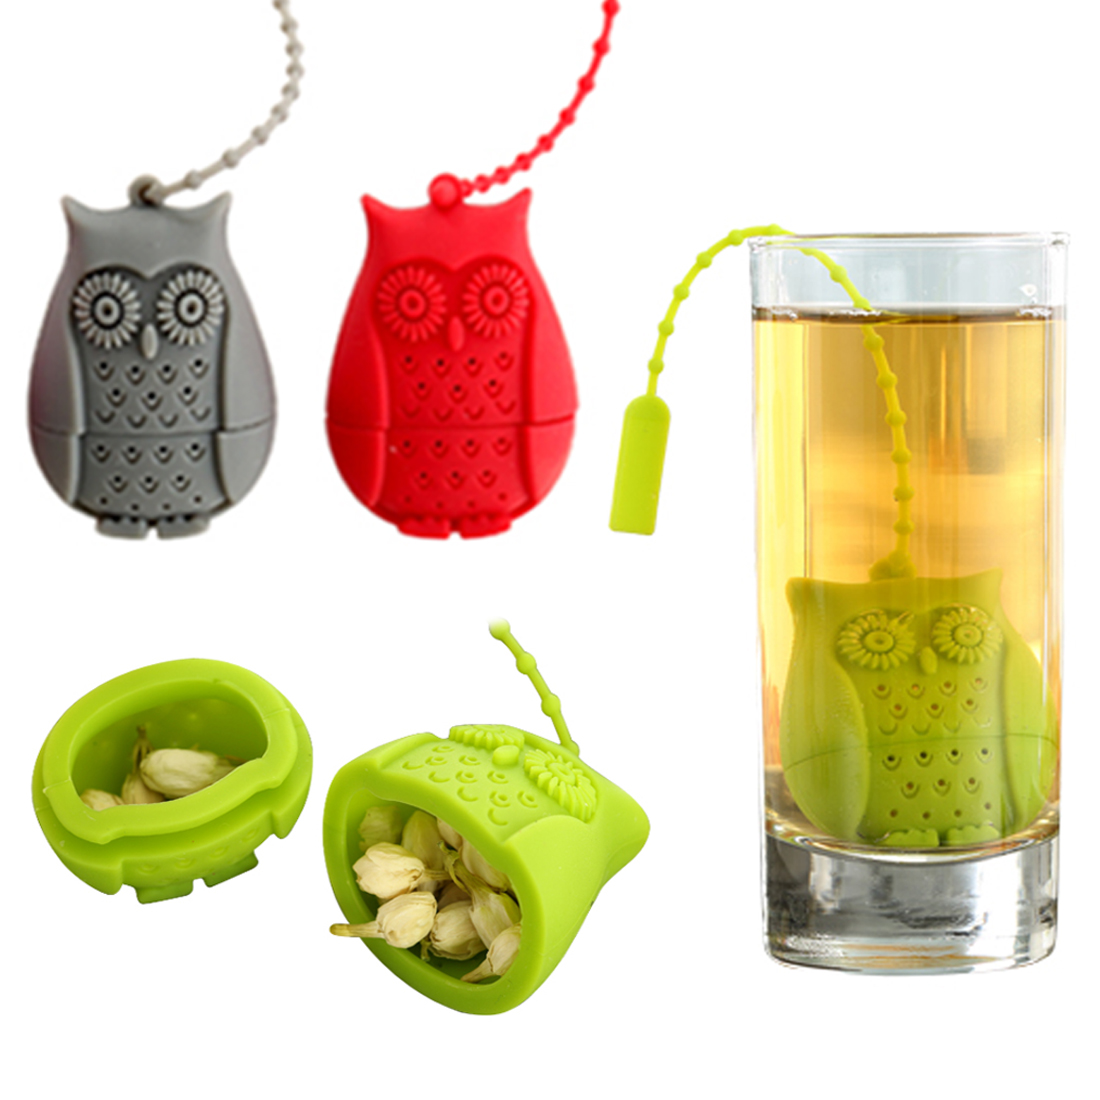 Owl Tea Bags Strainers Silicone Teaspoon Filter Infuser Silica Gel Filtration Silicone loose-leaf Tea Infuser Filt